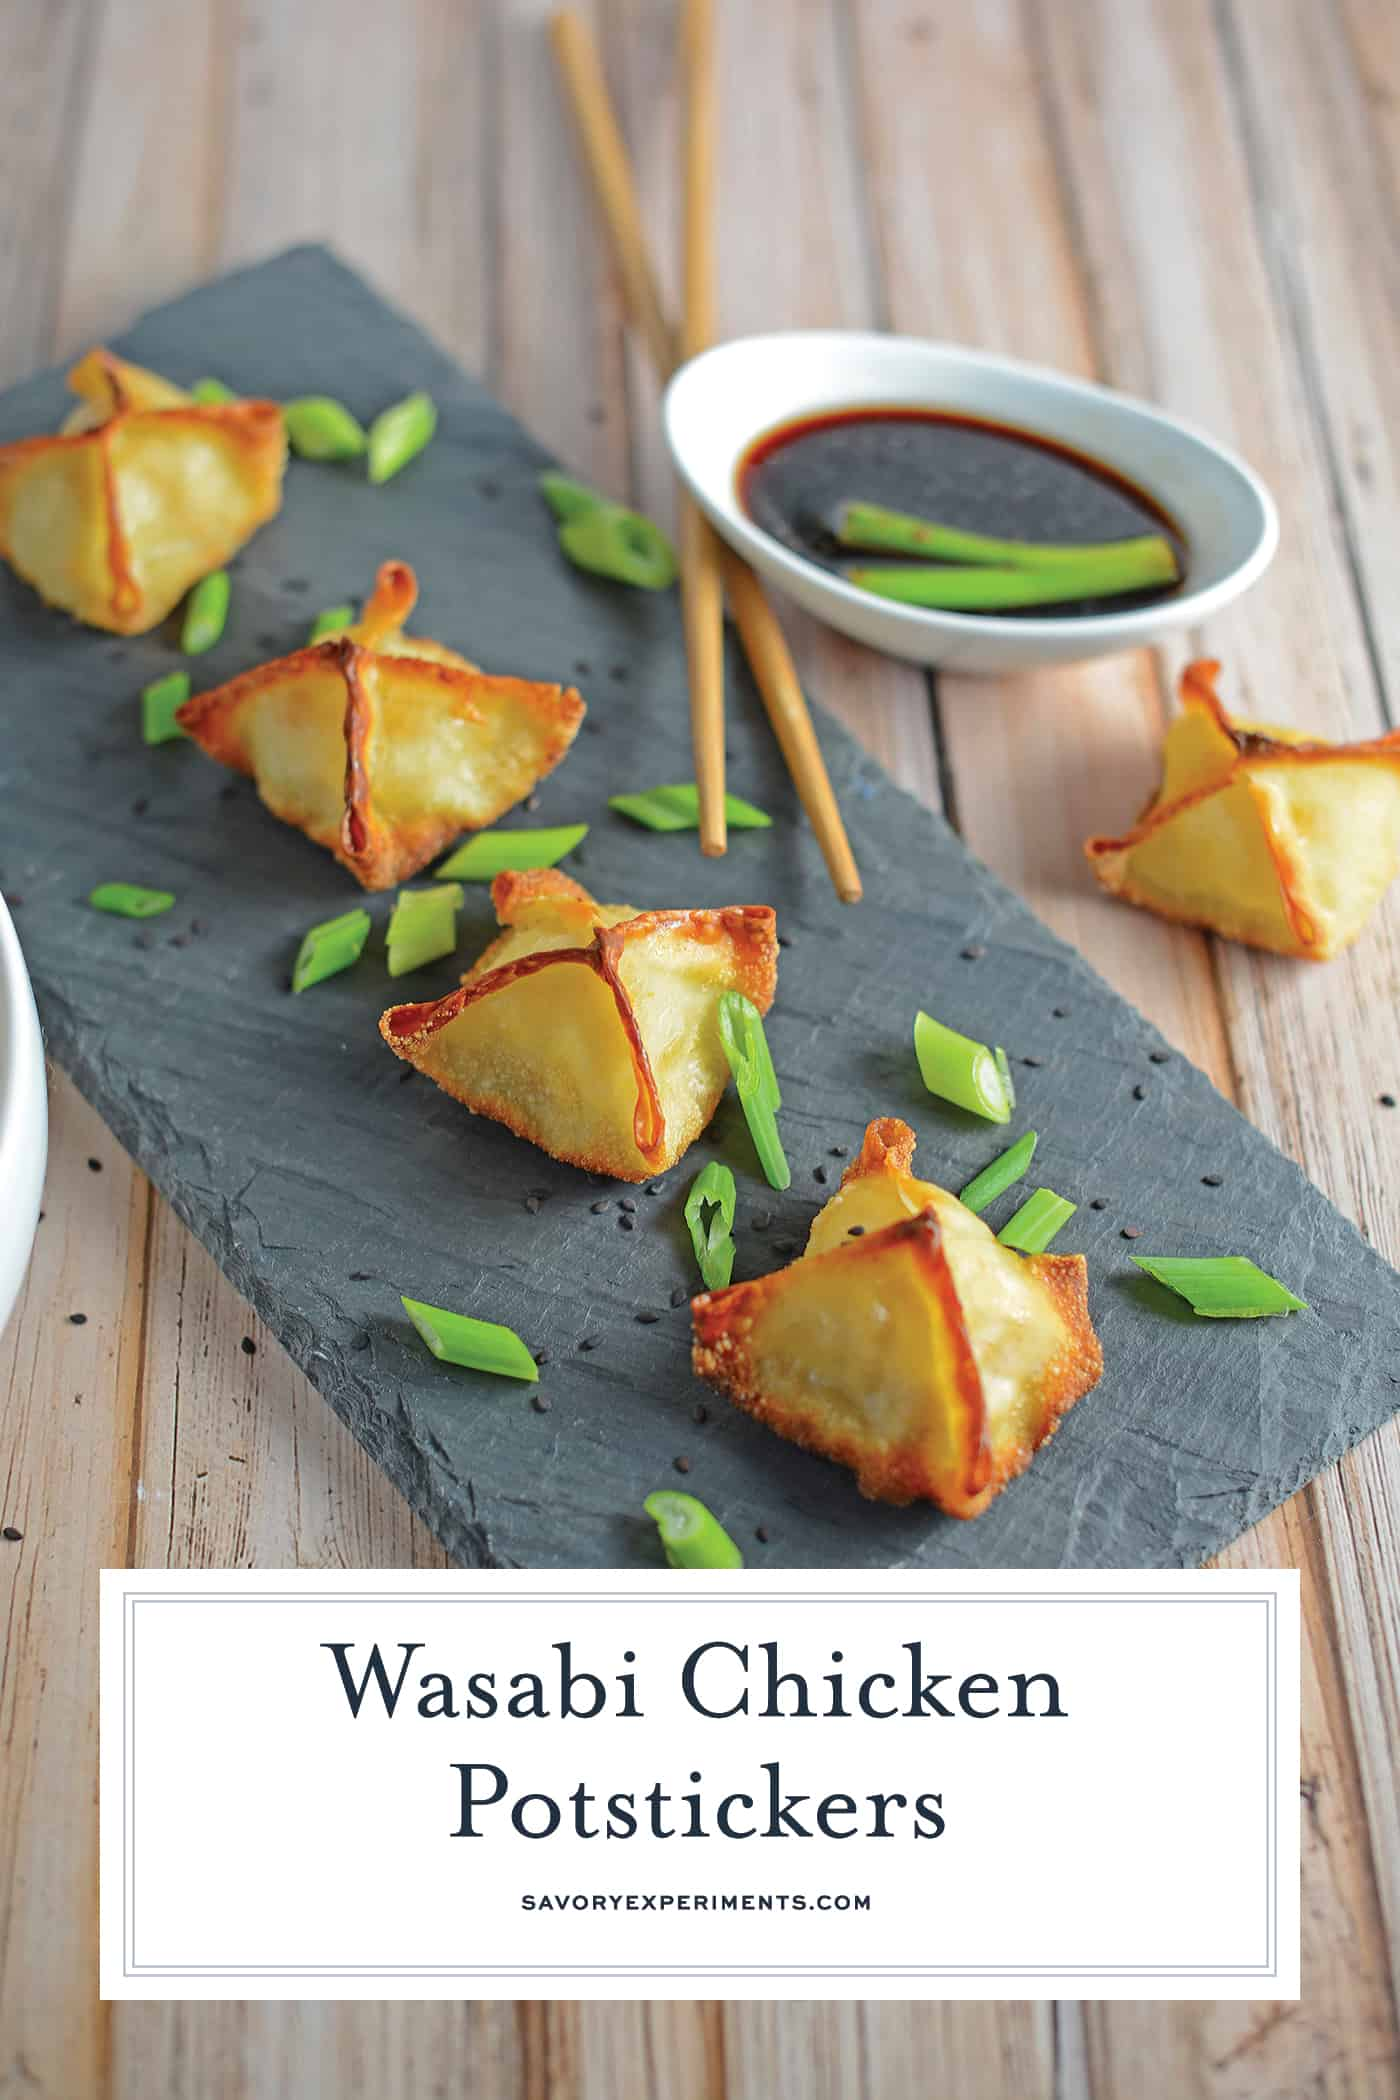 Wasabi Chicken Potstickers are homemade dumplings packed with ground chicken, nose flaring wasabi, ginger and seasonings. Dip in my famous potsticker sauce!#chickenpotstickers www.savoryexperiments.com